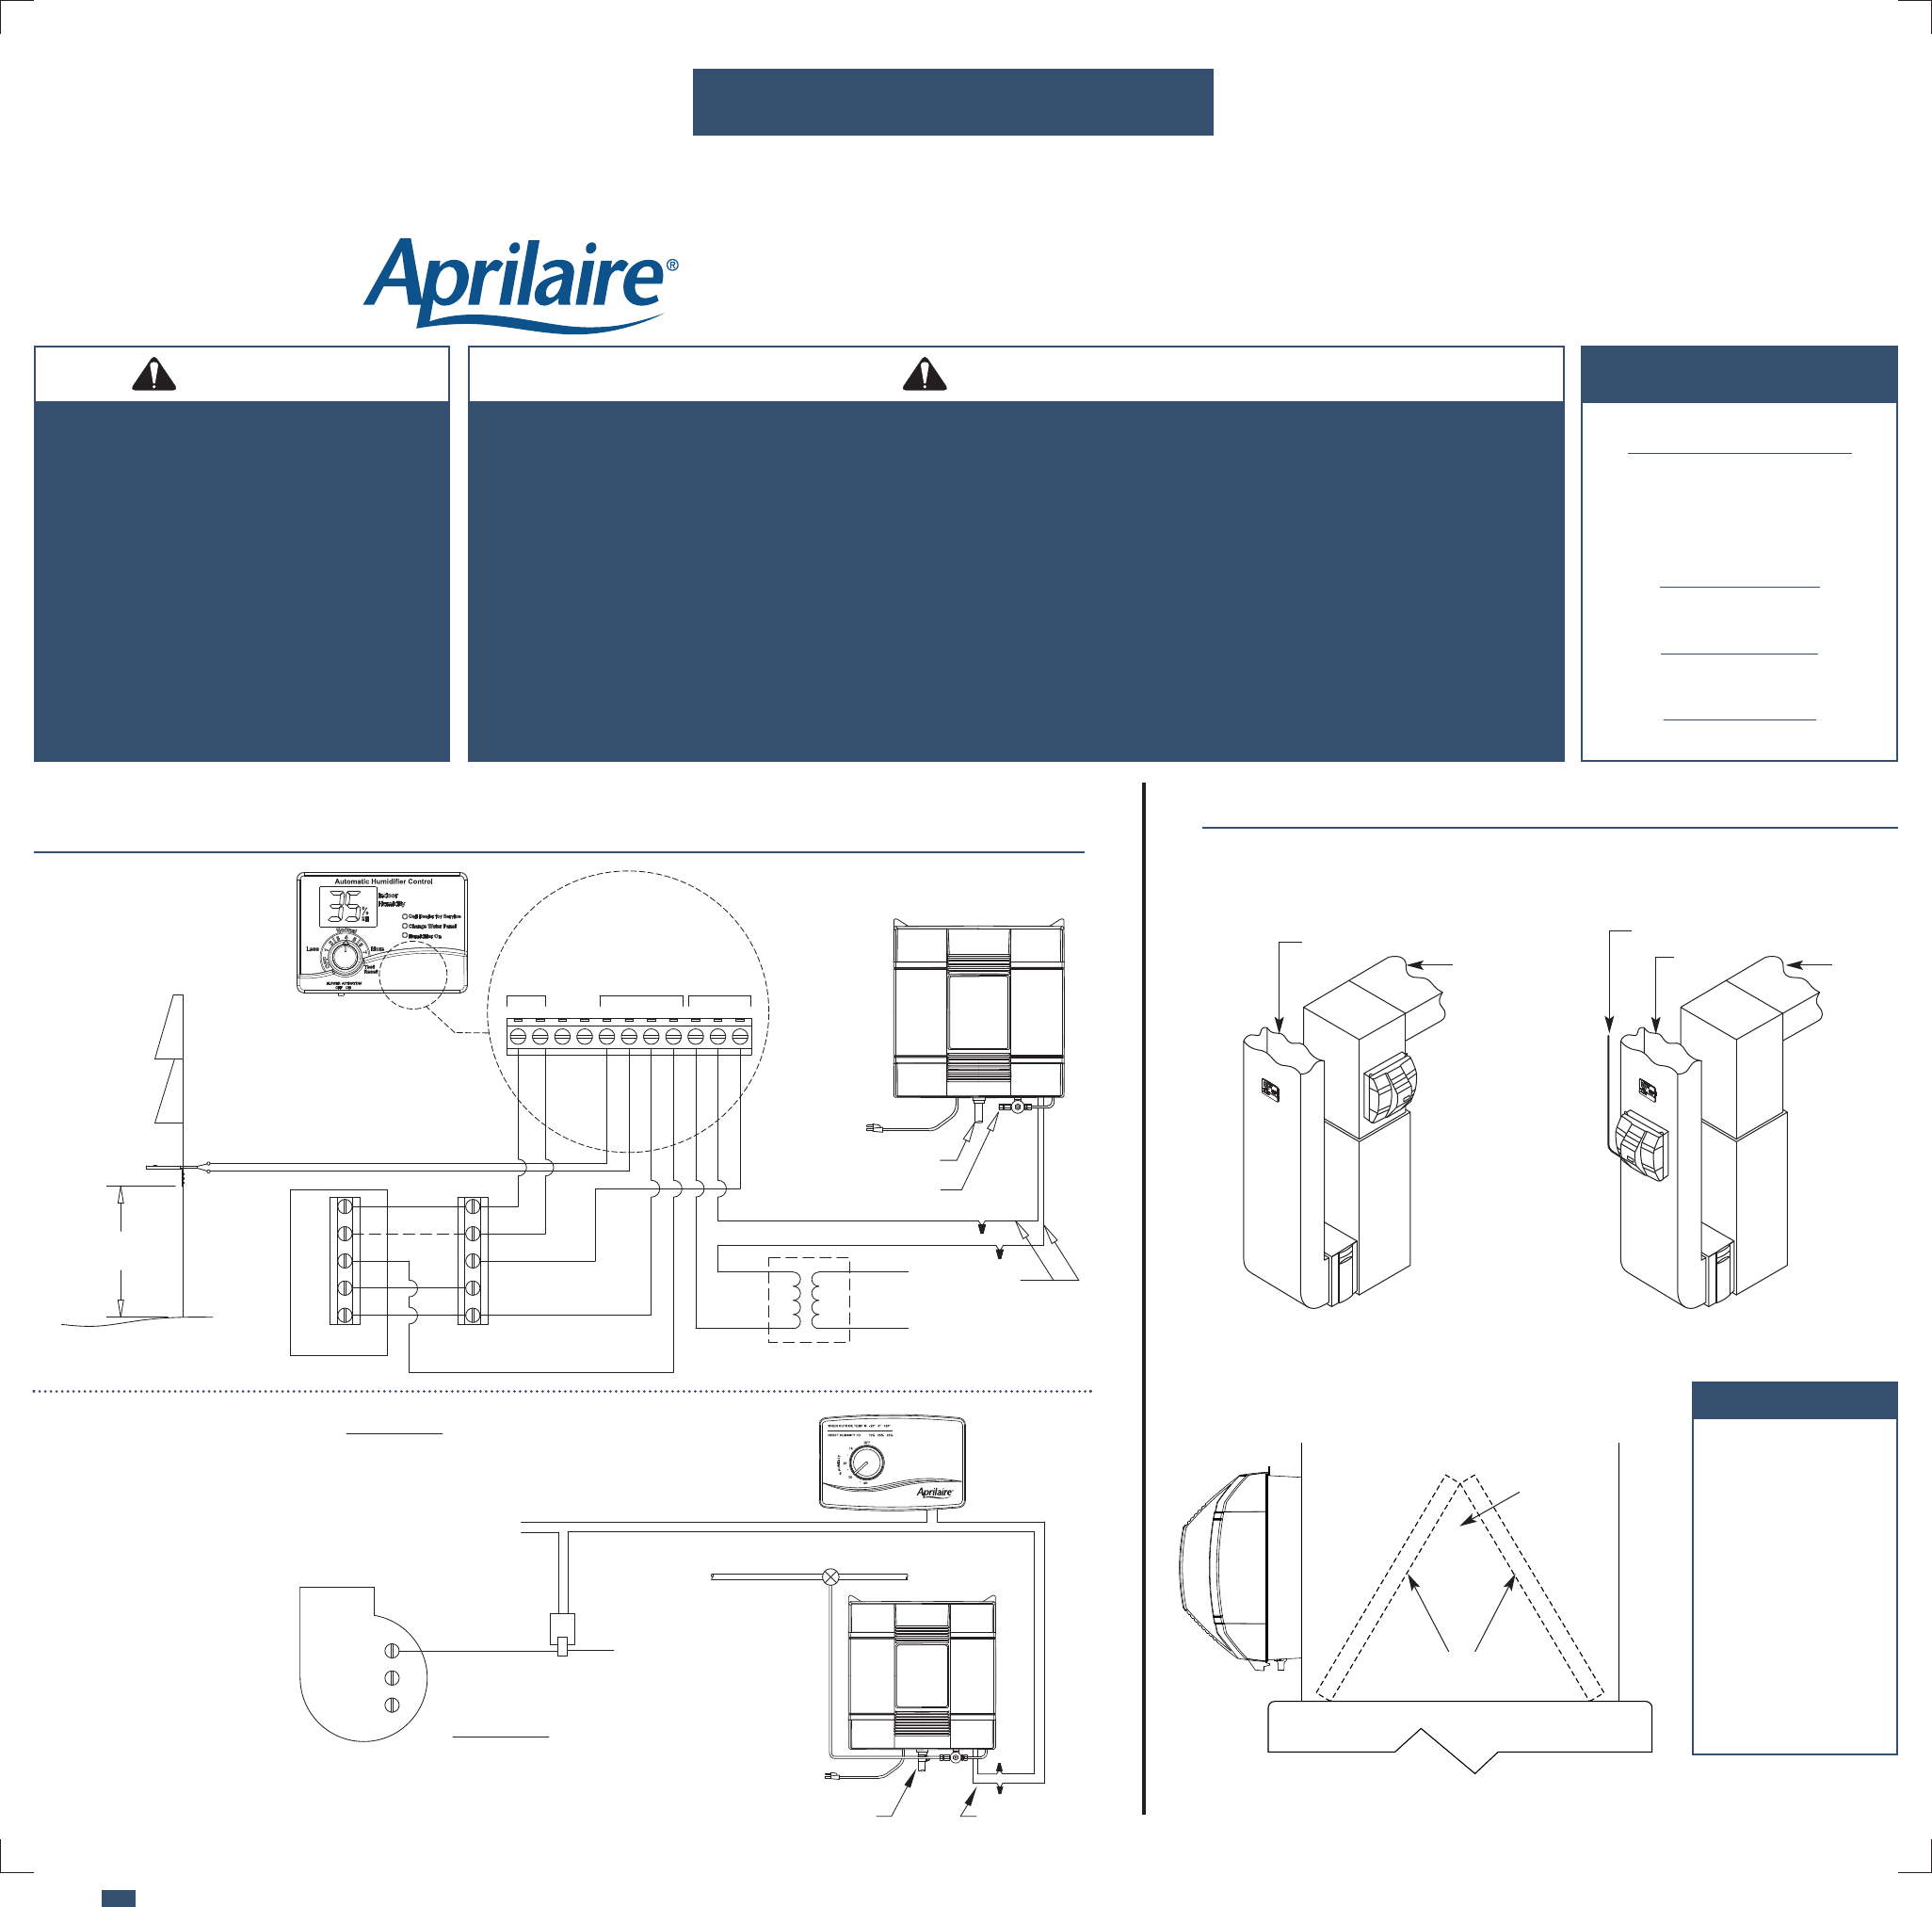 [DHAV_9290]  Aprilaire Humidifier 700 Users Manual 10008976A AA | Aprilaire Current Sensing Relay Wiring Diagram |  | UserManual.wiki